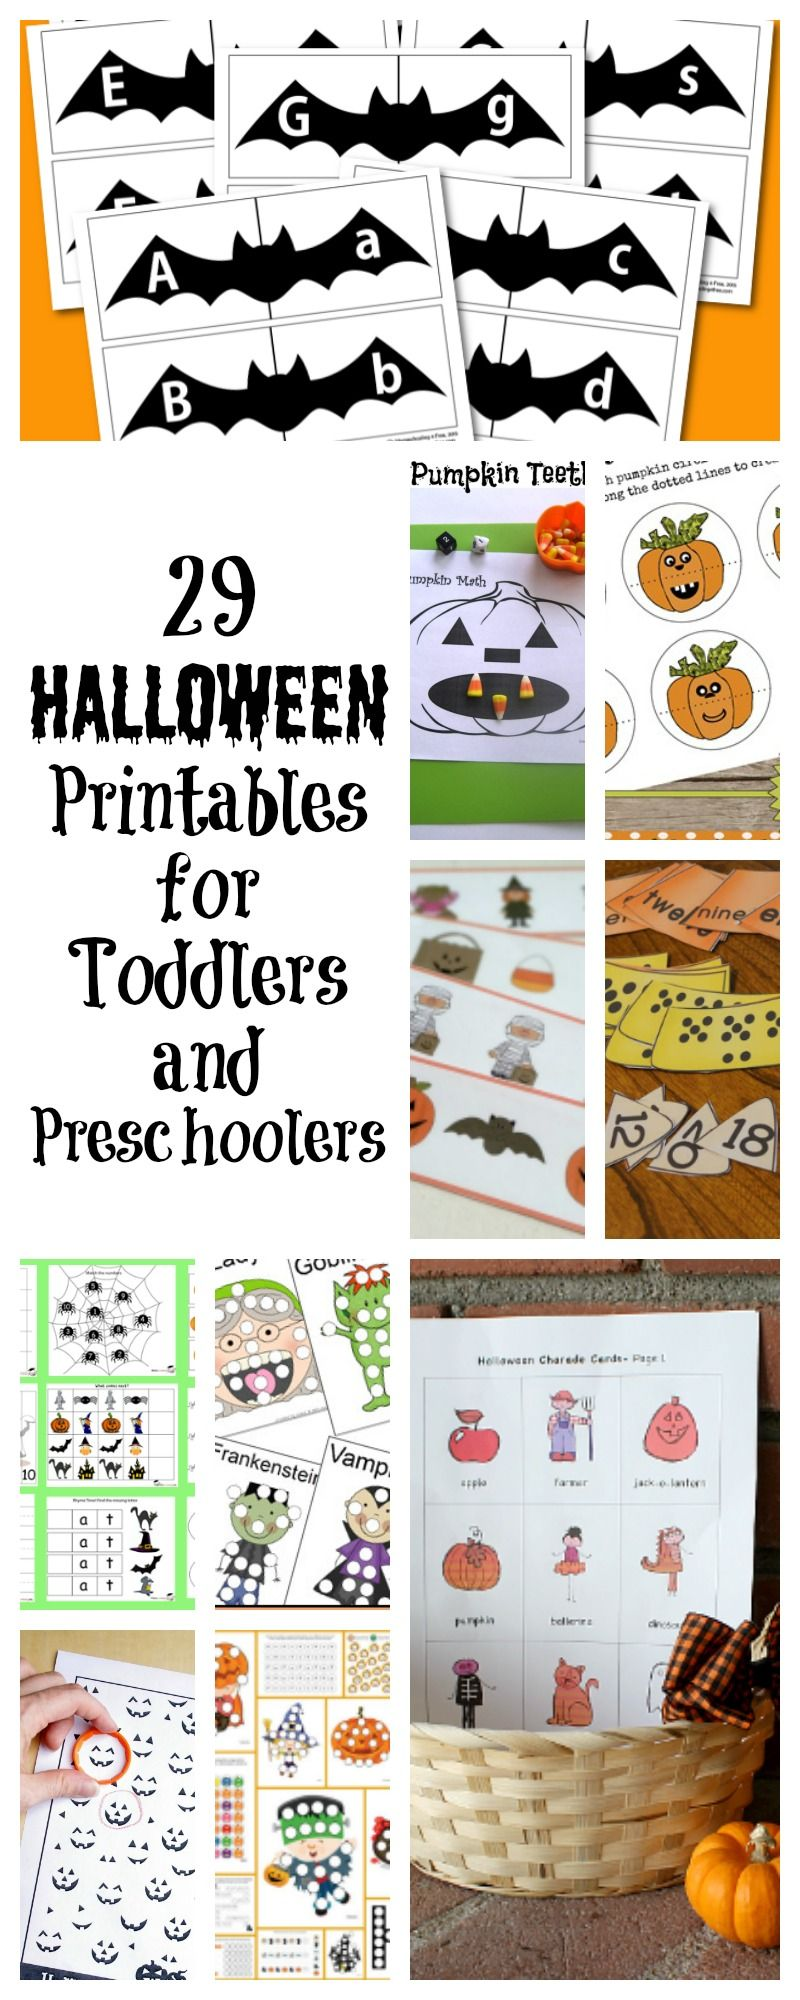 29 Halloween Printables For Toddlers And Preschoolers The Unprepared Mommy Halloween Printables Free Halloween Worksheets Free Halloween Worksheets [ 2000 x 800 Pixel ]